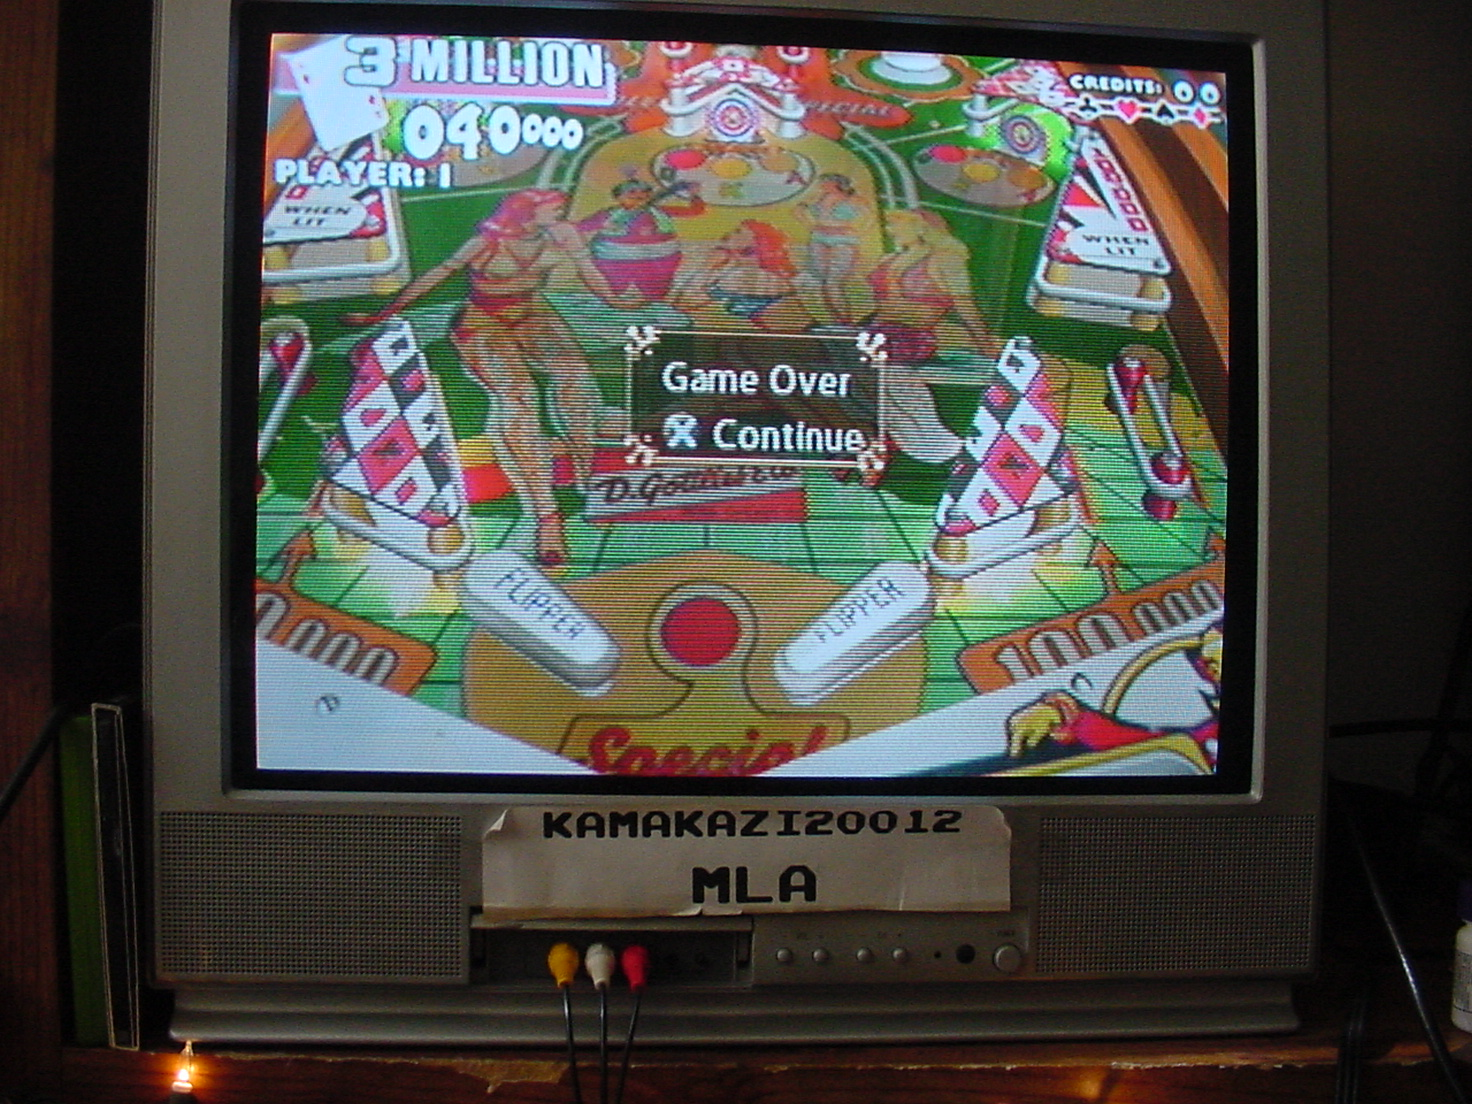 Pinball Hall of Fame: The Gottlieb Collection: Ace High [3 Balls] 3,040,000 points